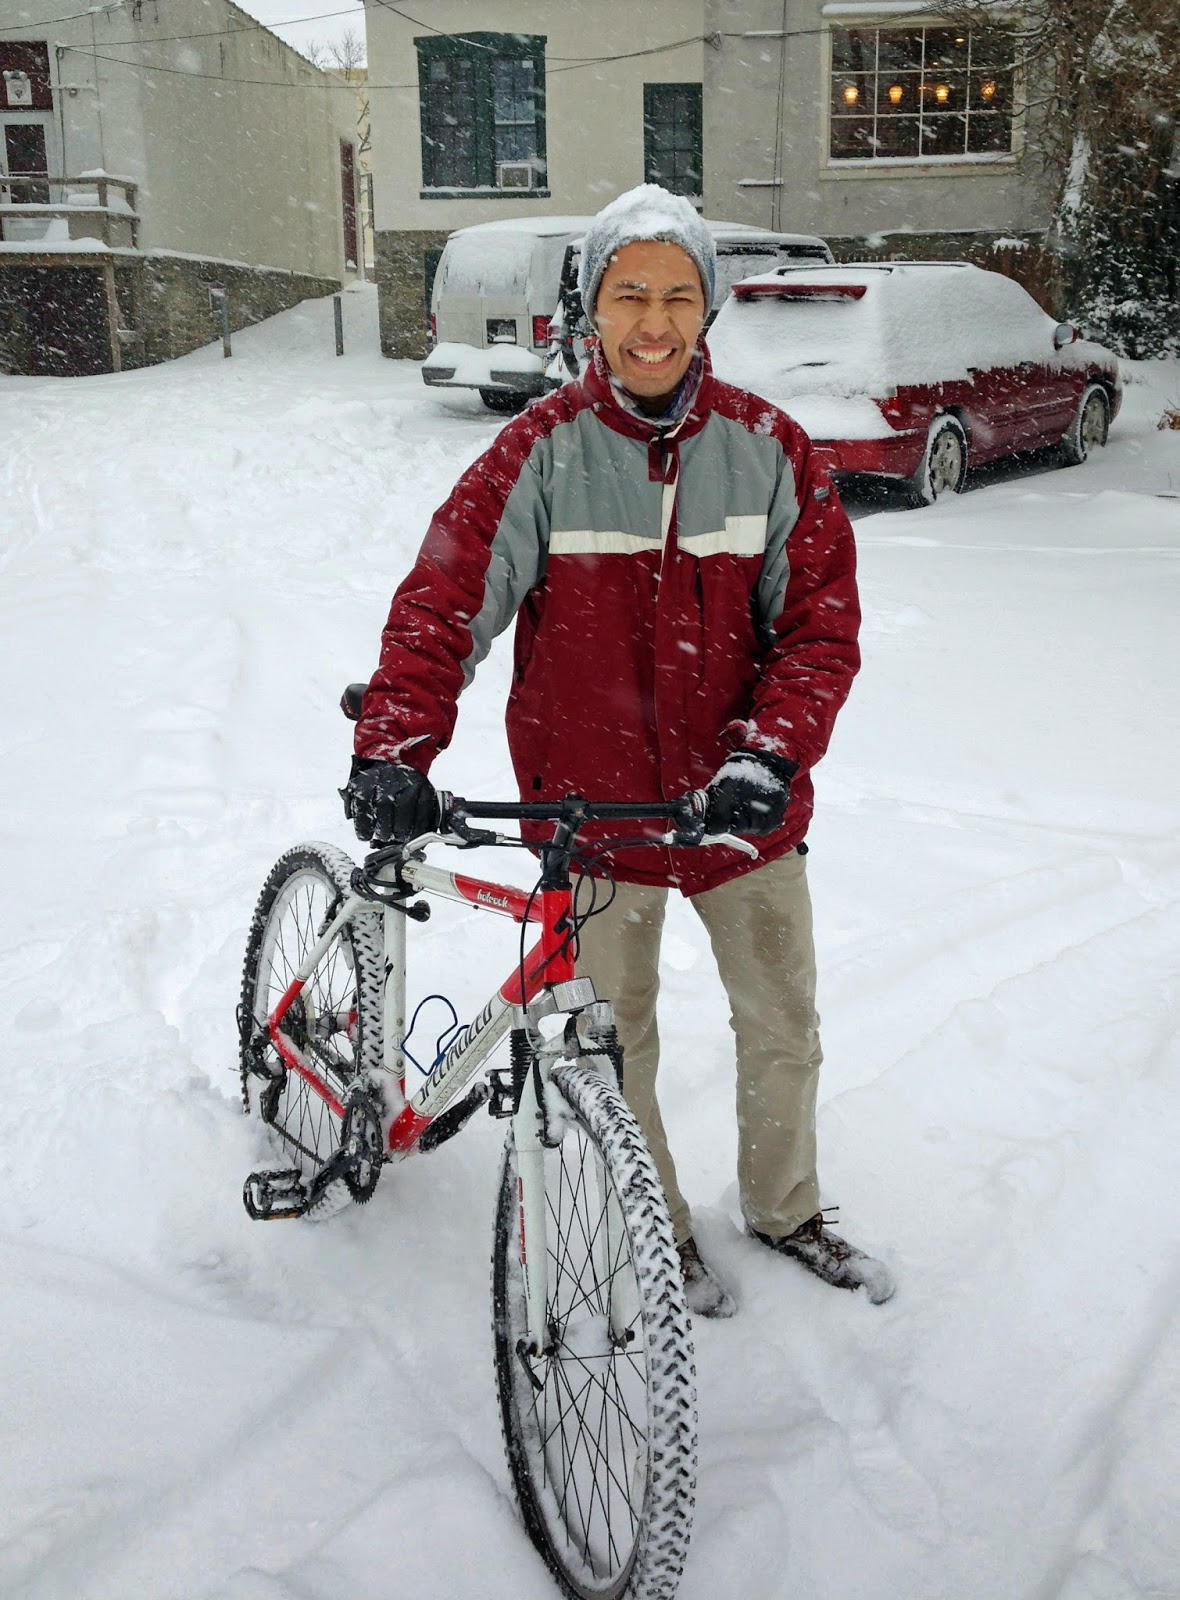 riding my bike in the snow